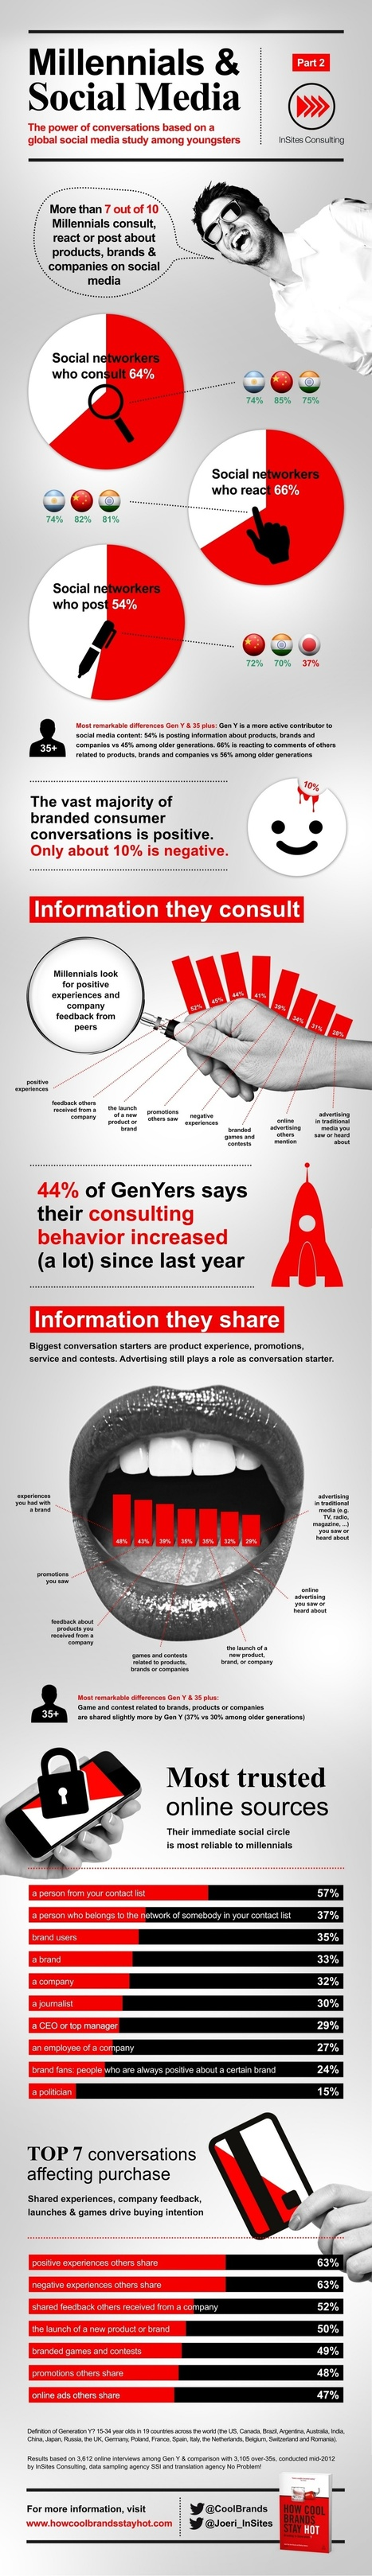 Millennials are the most marketing-savvy generation ever [infographic] | Social Content Technology Curation by Newsdeck | Scoop.it